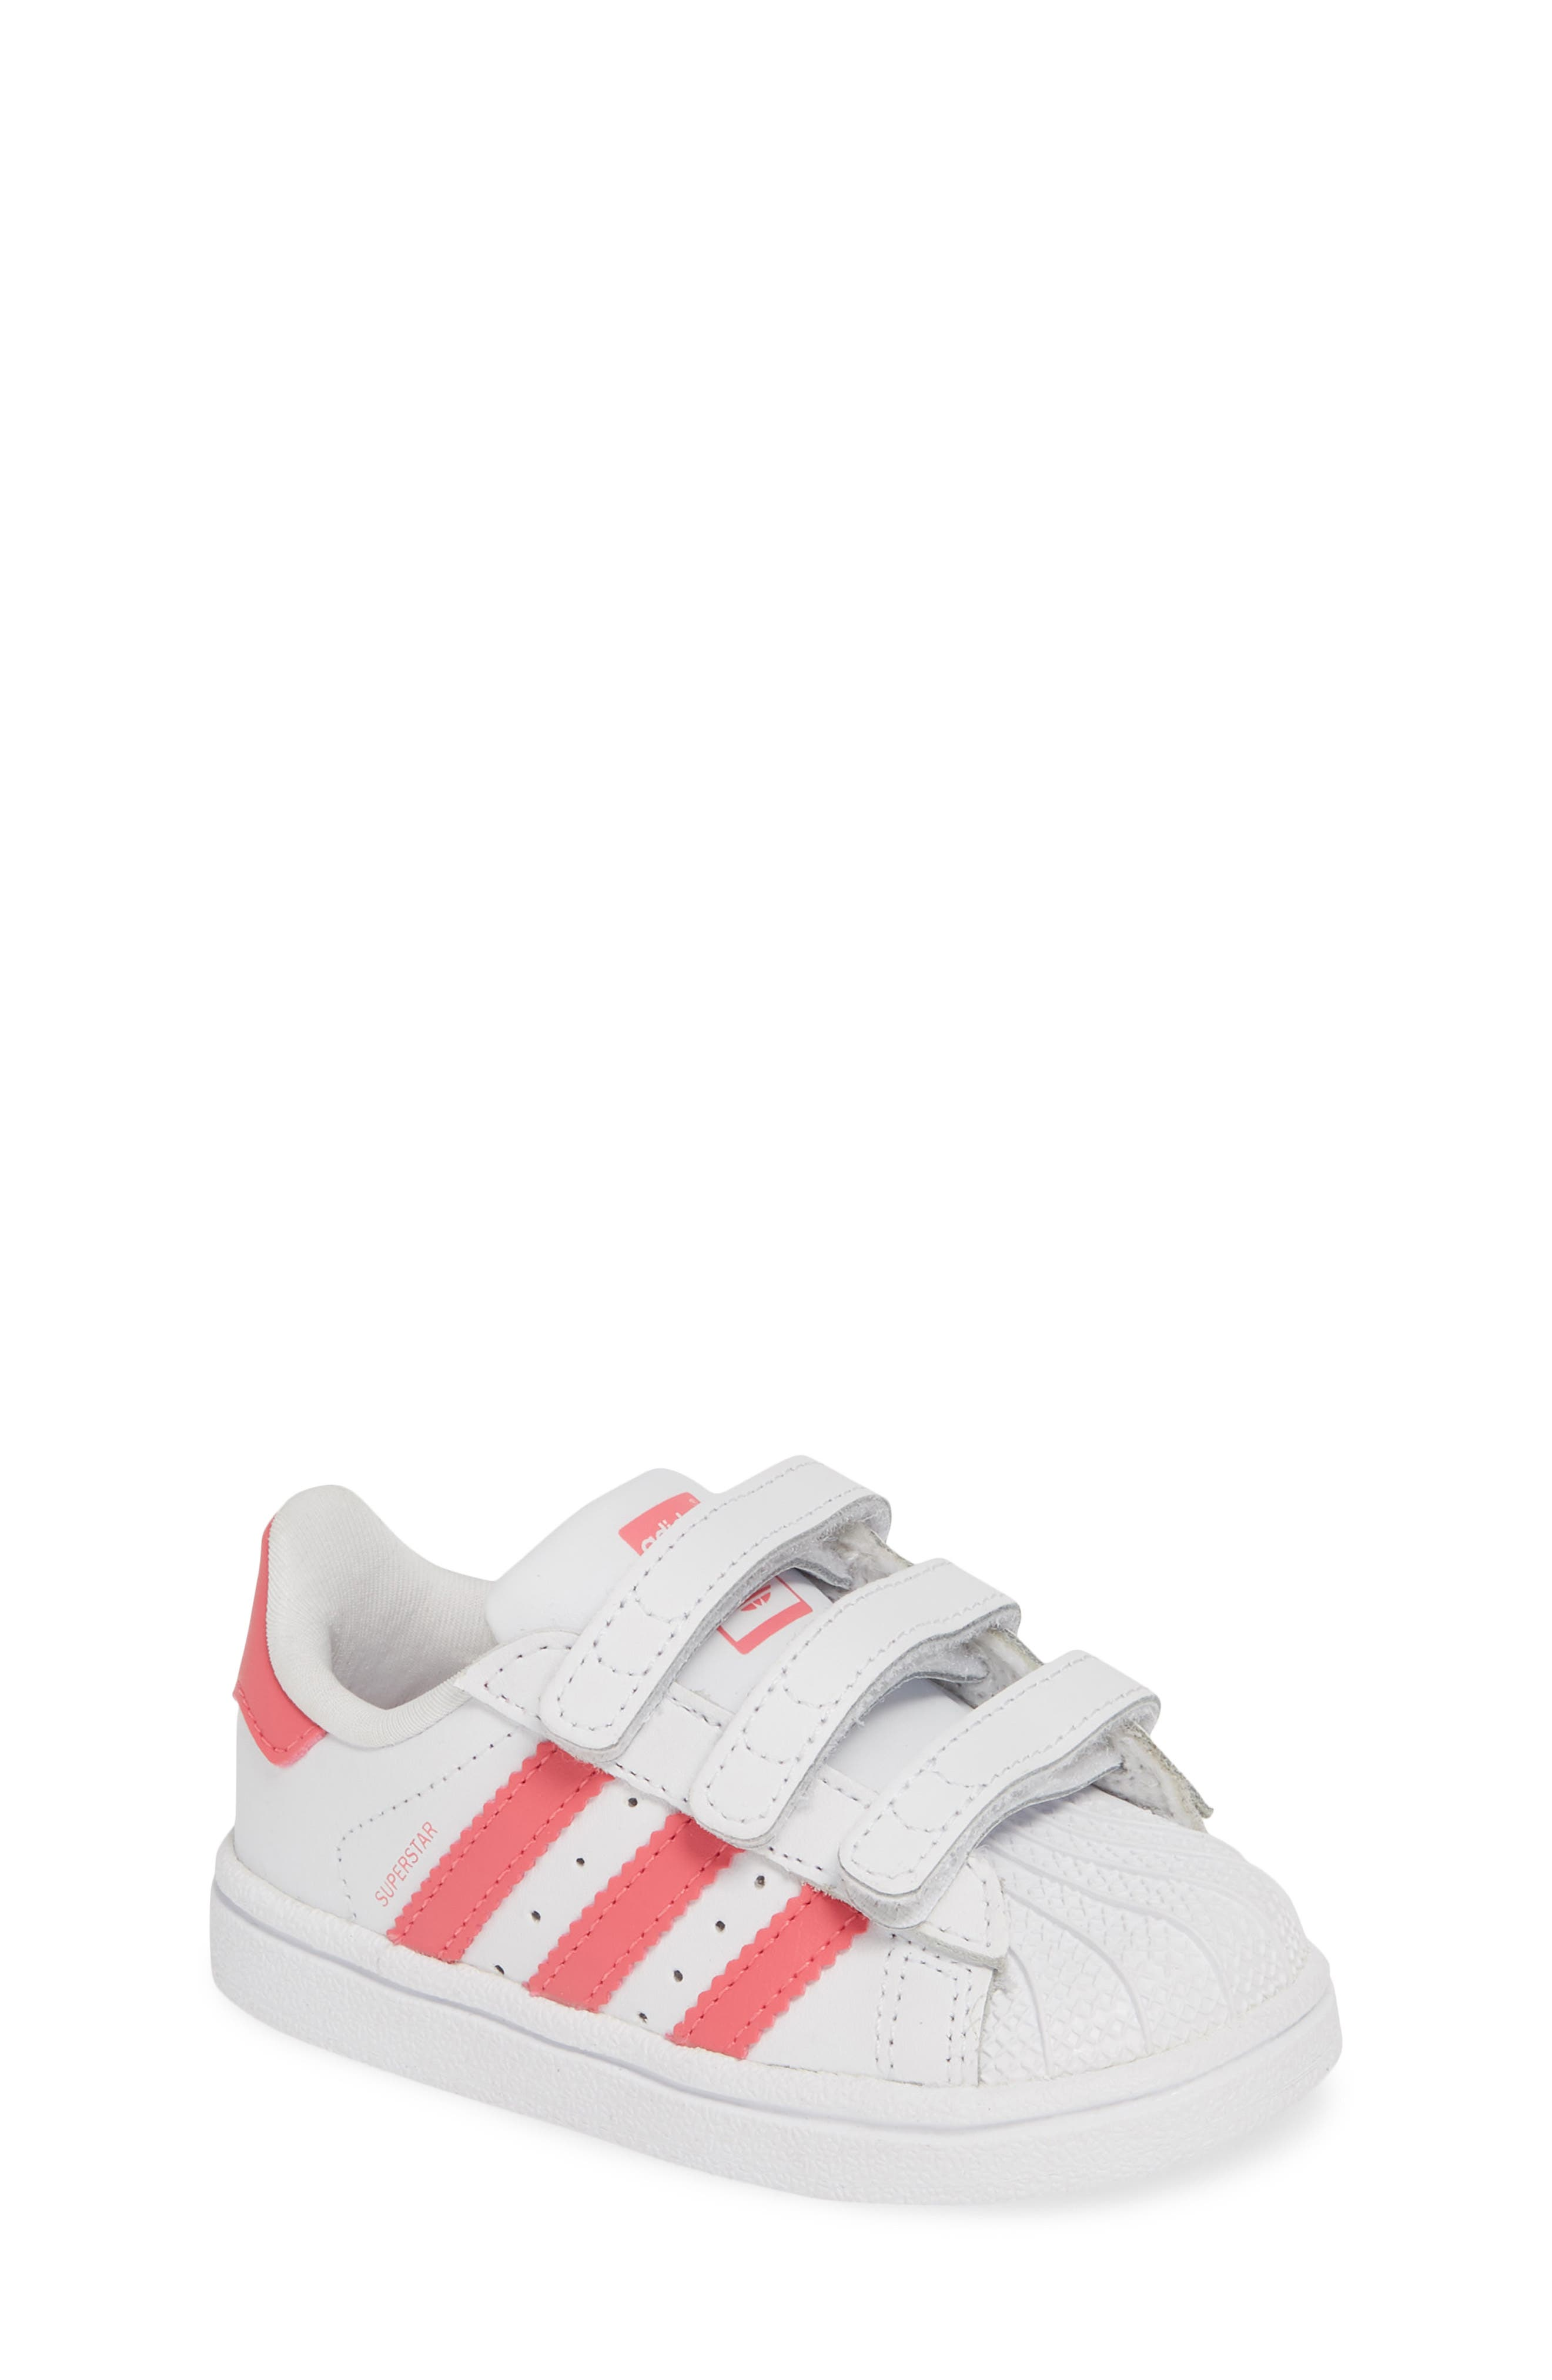 KidsActivewearamp; Adidas Adidas ShoesNordstrom For For vN8mnw0O